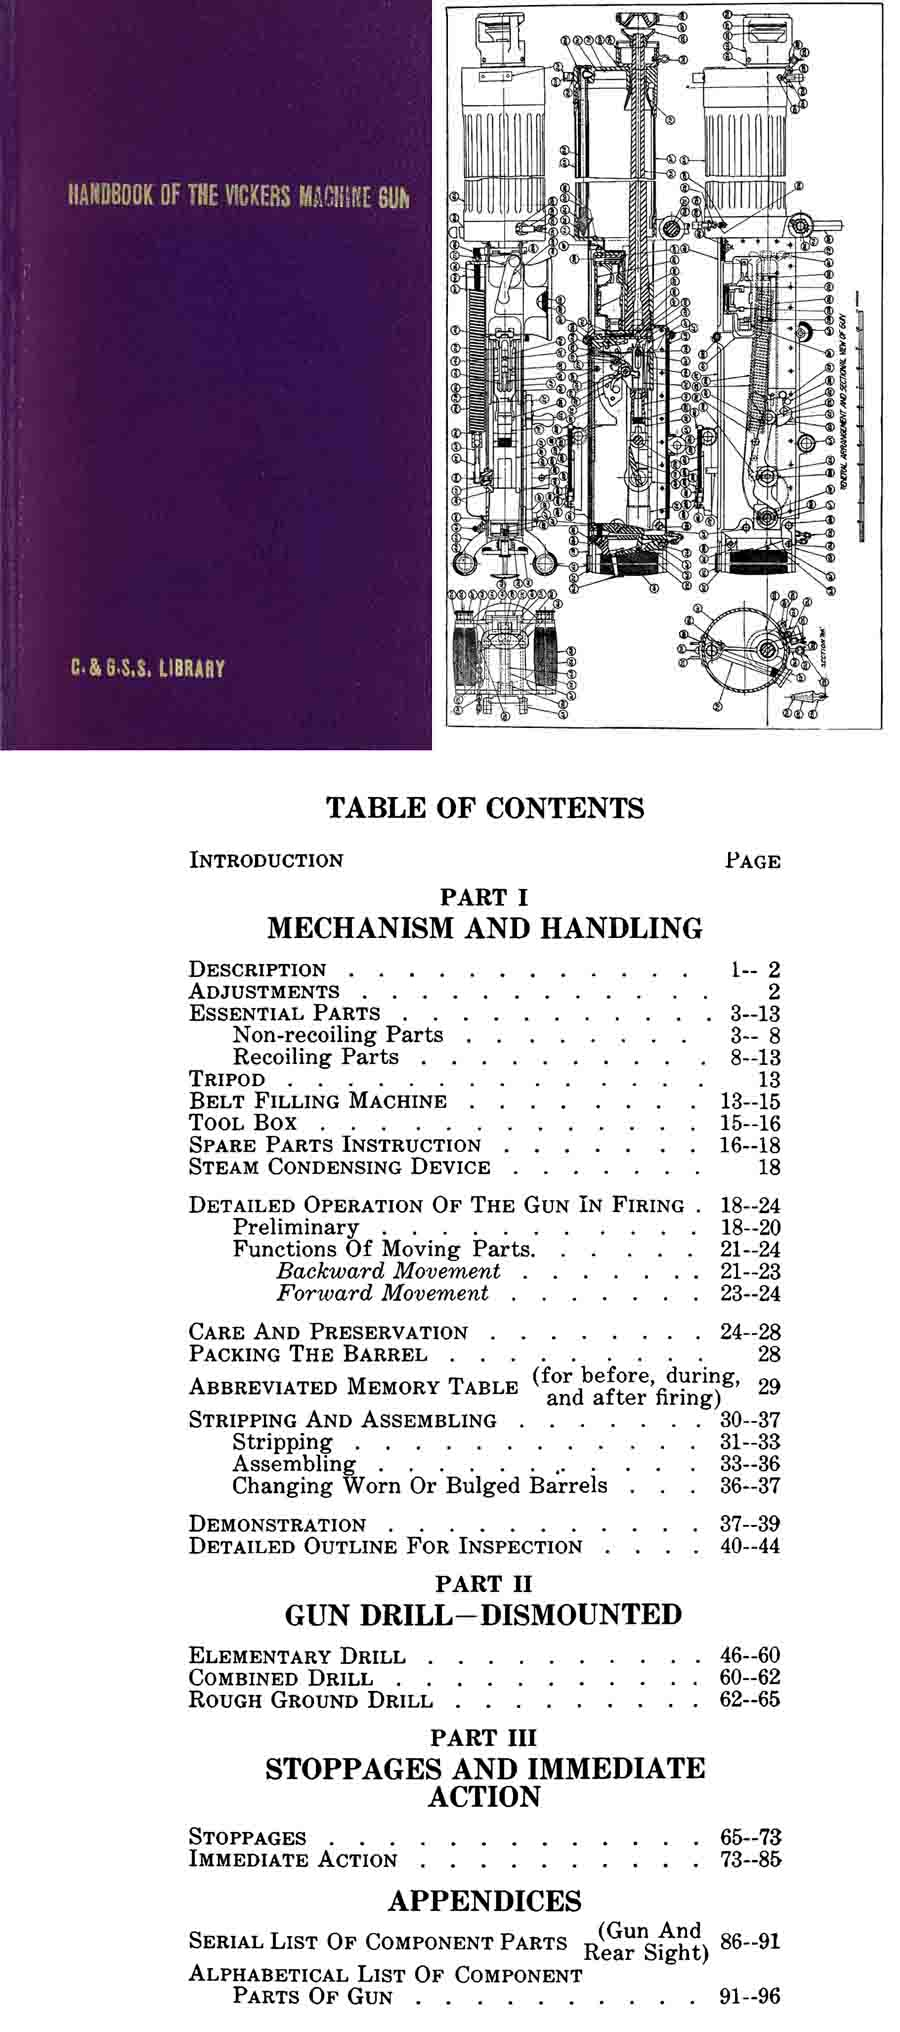 Vickers 1918 M1915 Machine Gun Handbook (US- Fort Sill)